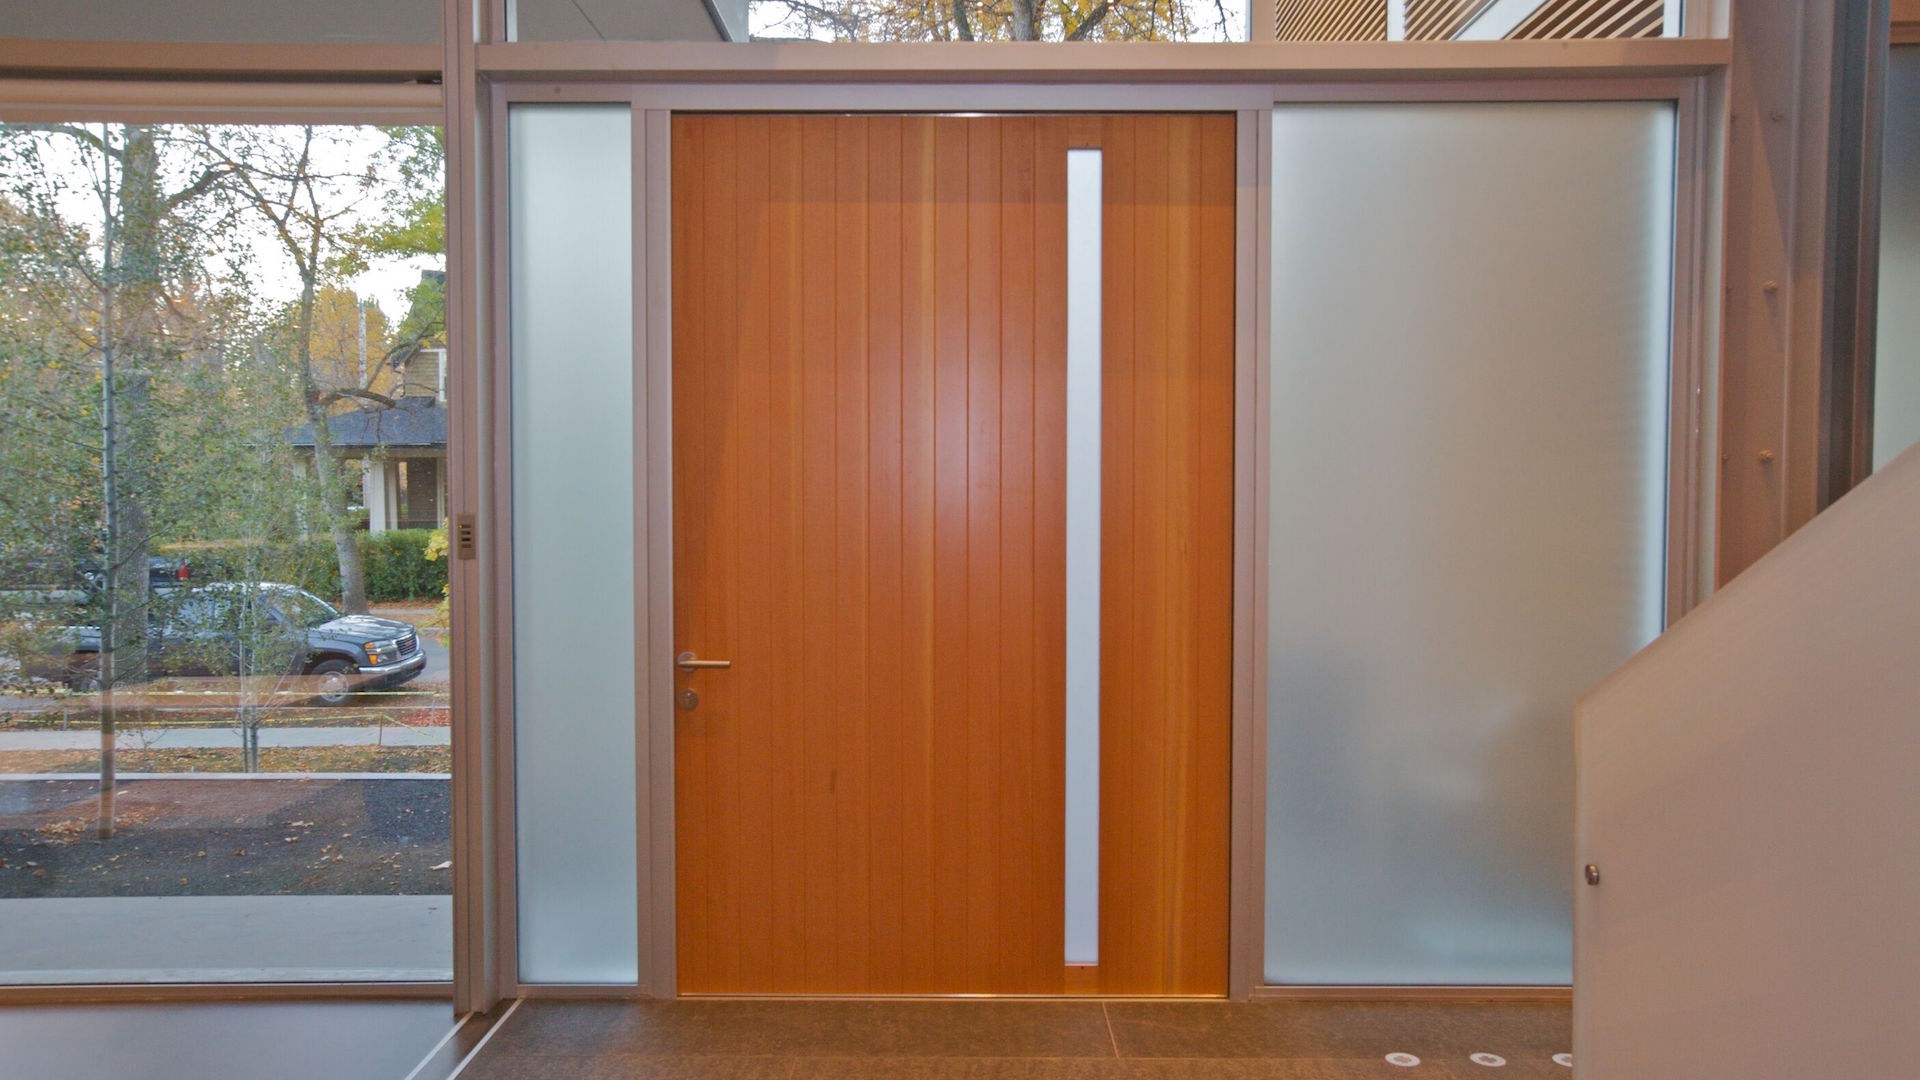 Pivot doors   There's lots of design freedom in the concept of a pivot door. At TAG, we have the capability to fulfill every possible variation of it. Highly desirable offset pivot doors are available as a factory built option. Inward and outward opening, different inner and outer colors — every option comes without compromise in thermal comfort, safety and building code adherence.